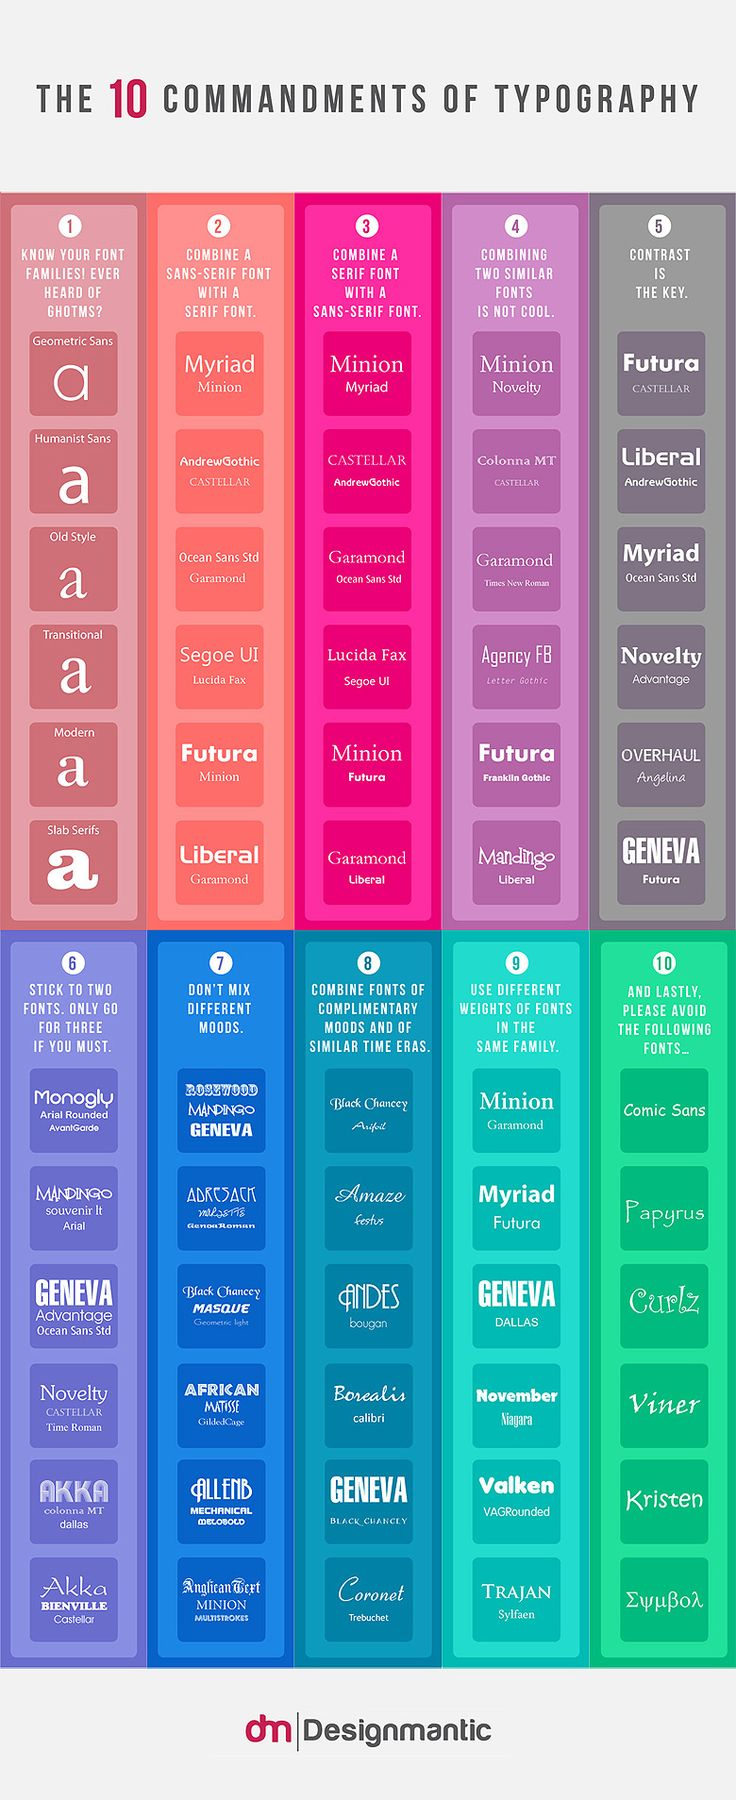 Top 10 Tips To Help You Choose The Right Fonts For Your Next Project [INFOGRAPHIC]